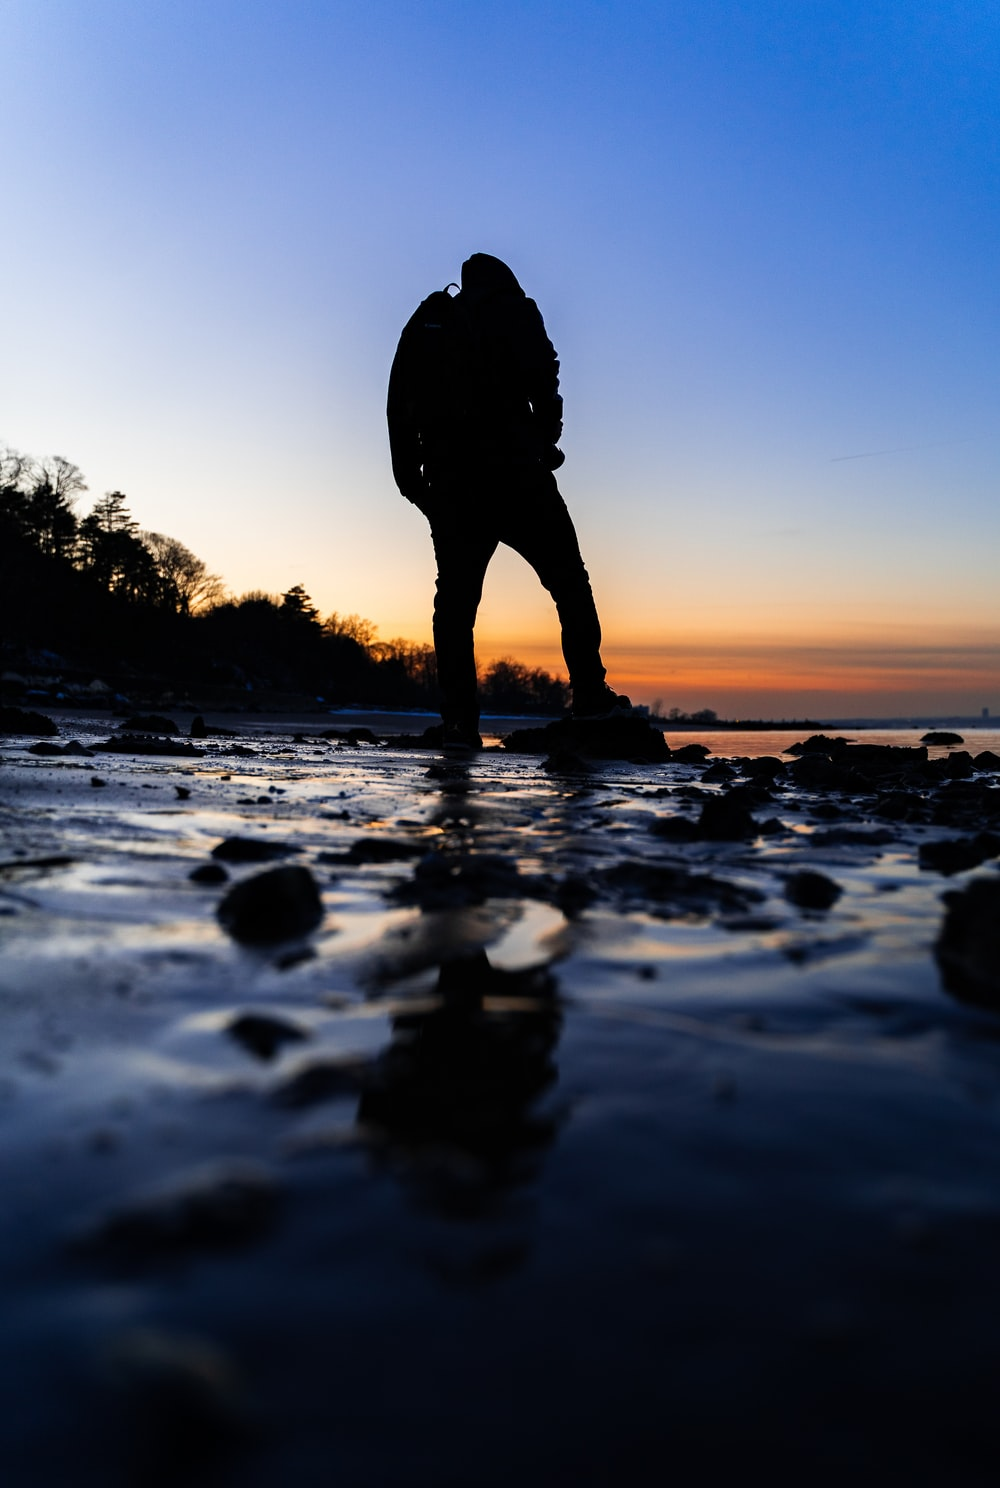 silhouette of person standing on rocky shore during sunset